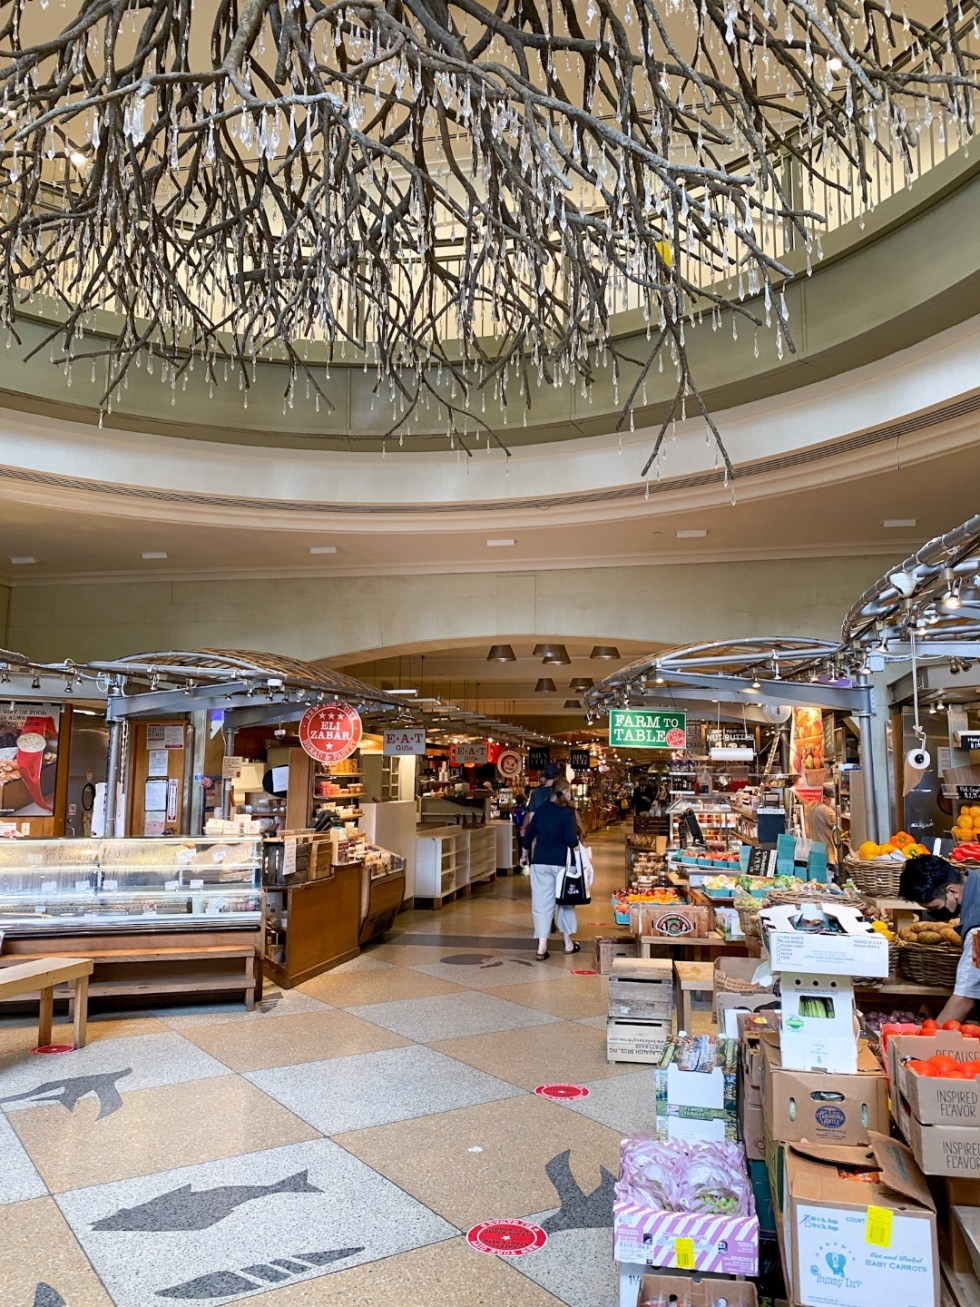 NYC Summer Weekend: Things to Do in NYC in the Summer - I'm Fixin' To - @imfixintoblog   NYC Summer Weekend by popular NC travel blog, I'm Fixin' To: image of Grand Central Terminal shops.